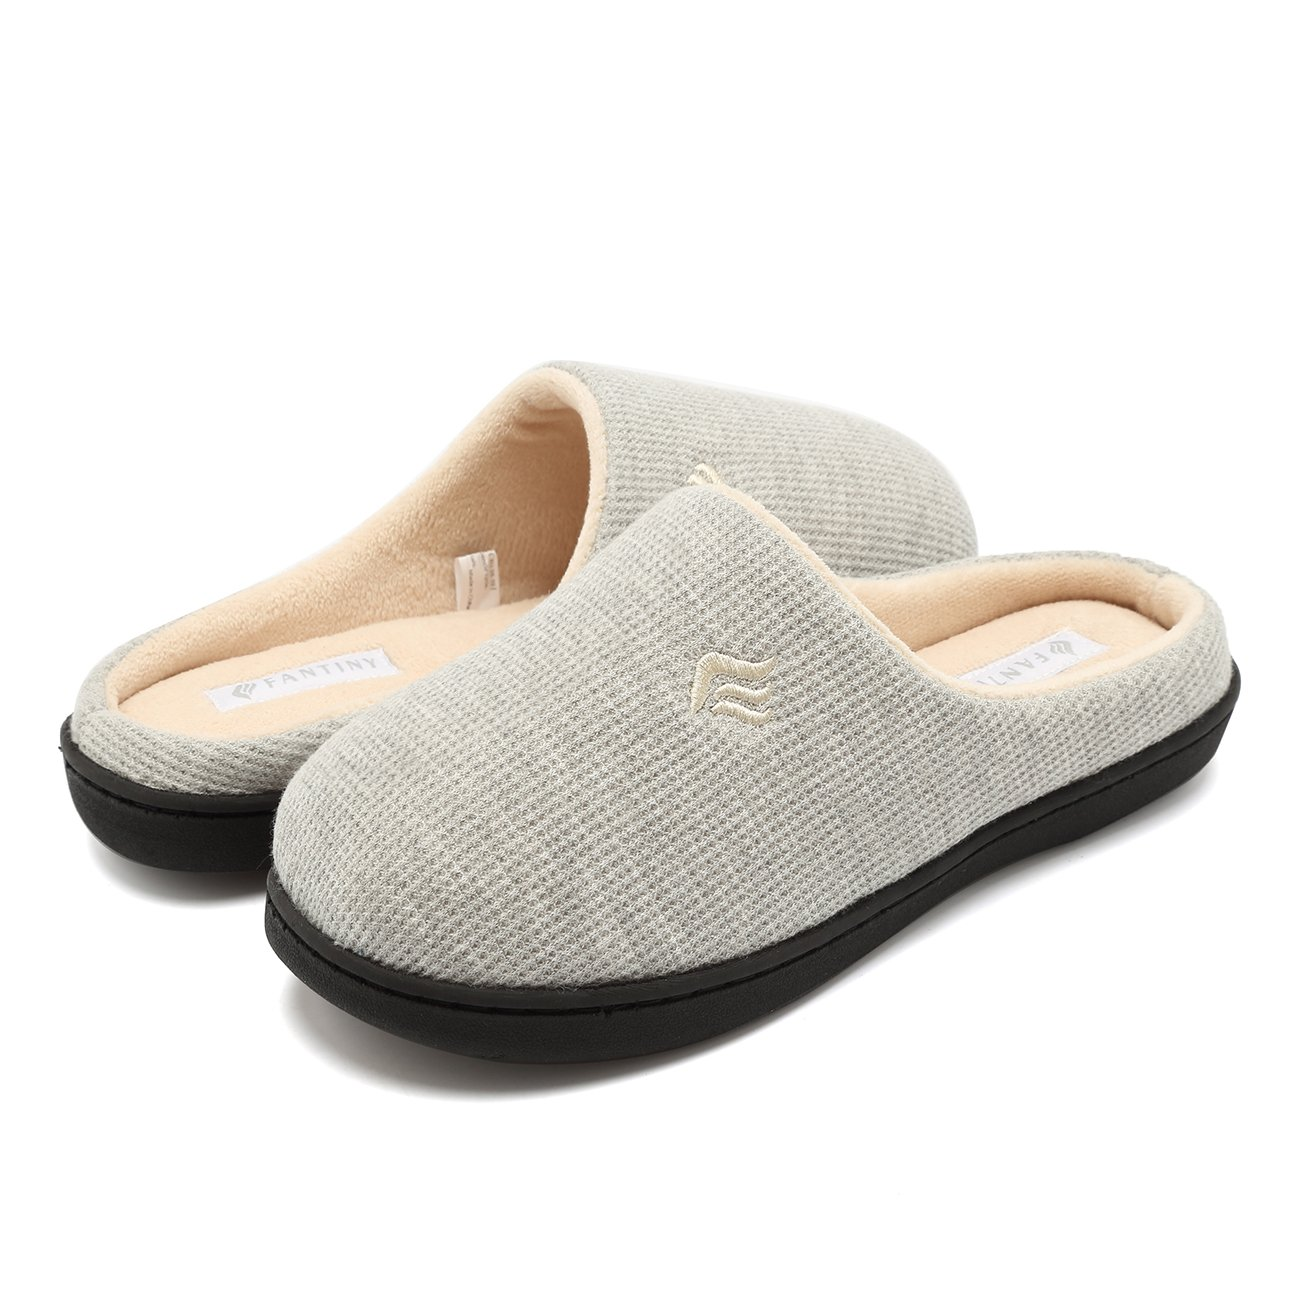 CIOR Fantiny Women's Memory Foam Slippers Two-Tone Slip-on Clog Scuff House Shoes Indoor & Outdoor-U118WMT019-lightgray-40.41